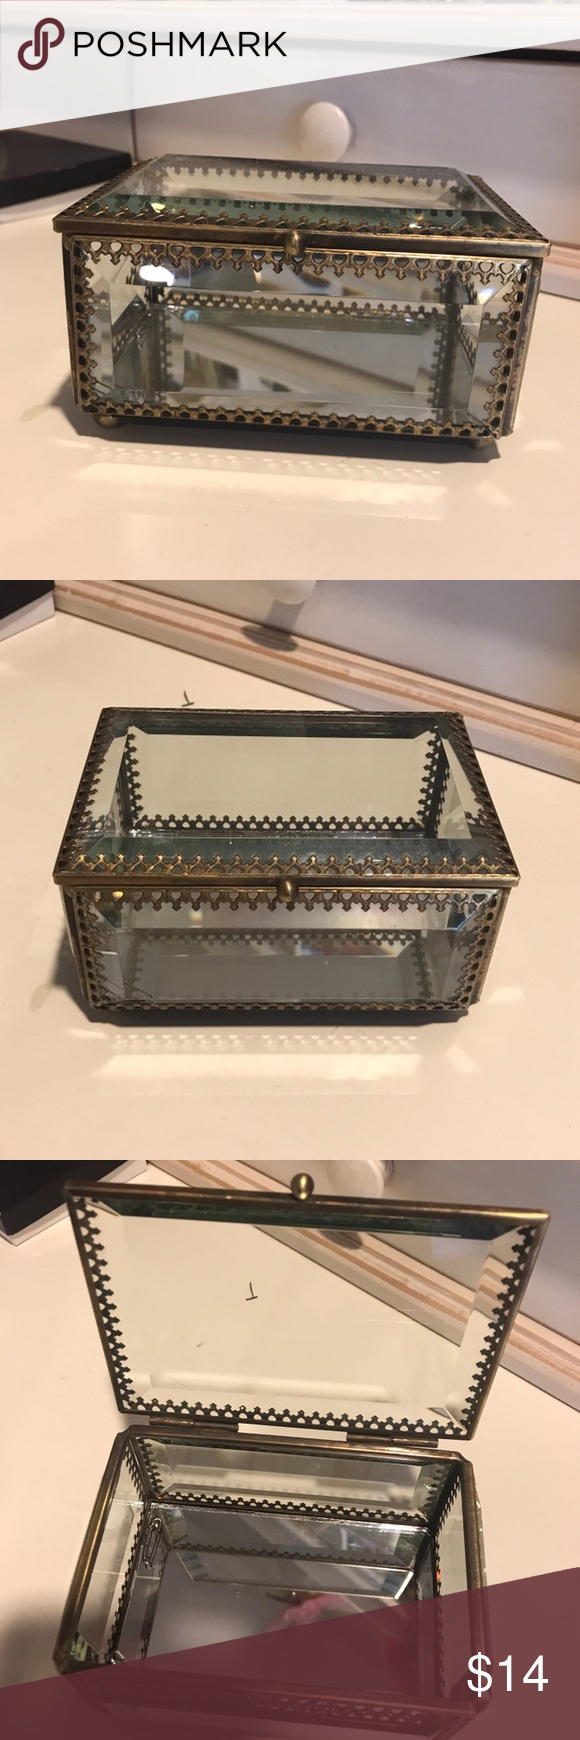 Nicole Miller Jewelry Box Delectable Nicole Miller Jewelry Box Never Used Jewelry Boxbeautifulperfect Inspiration